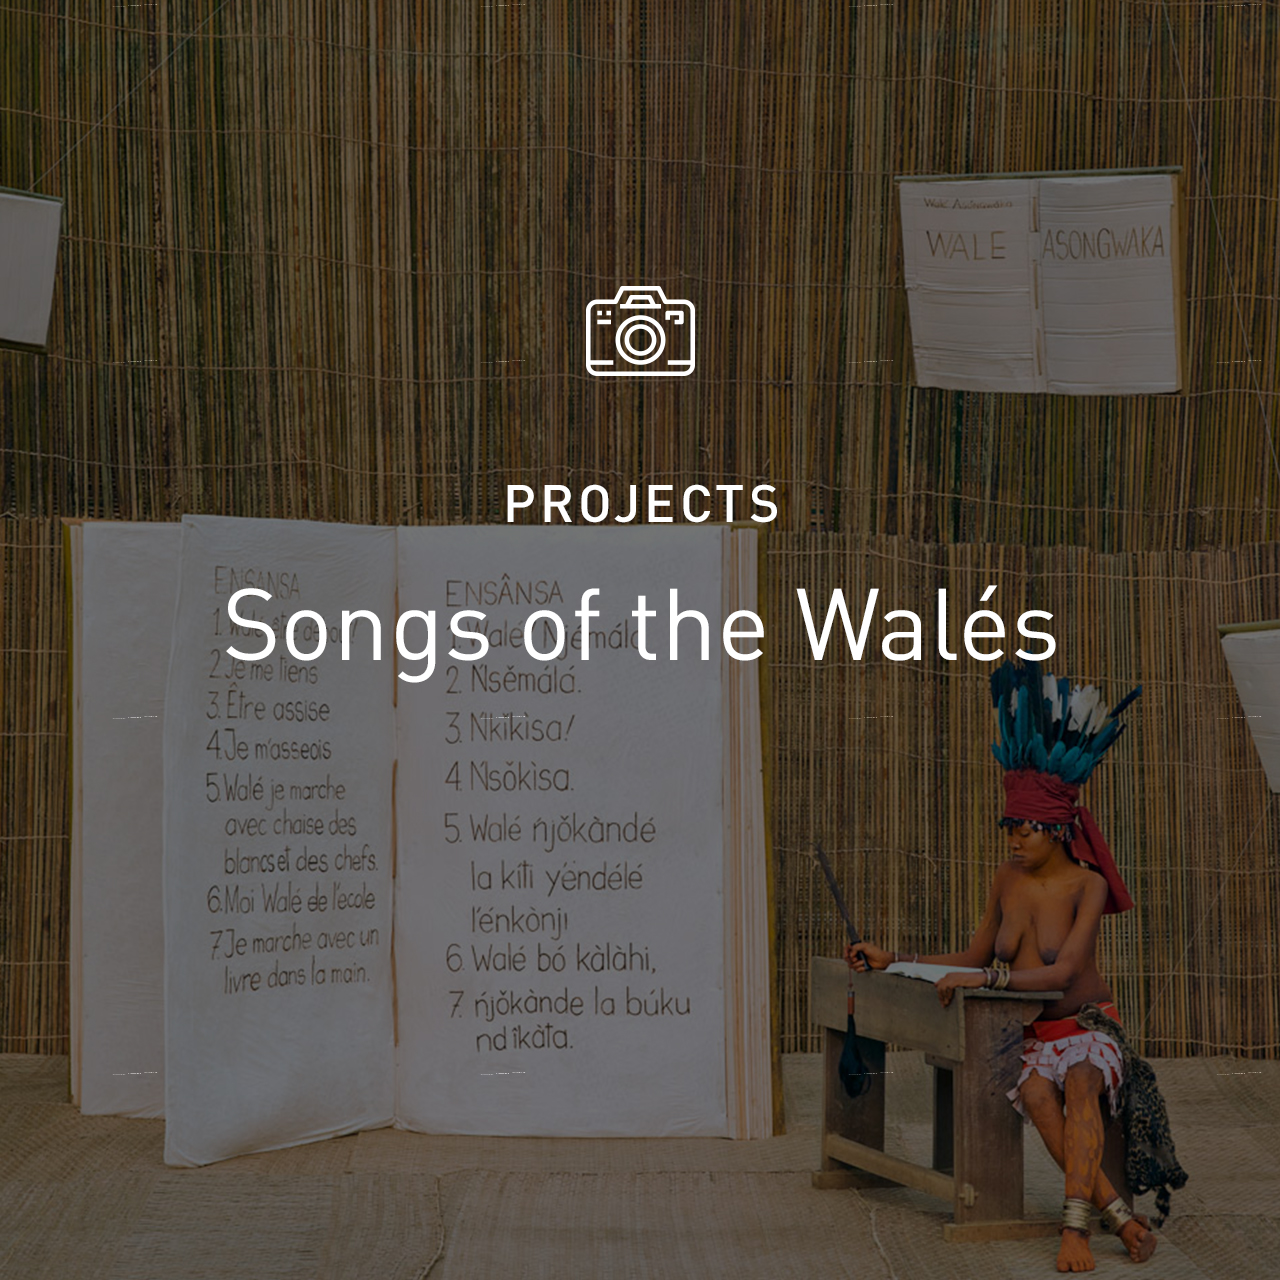 new_c_Songs_of_the_Walés_-_Projects